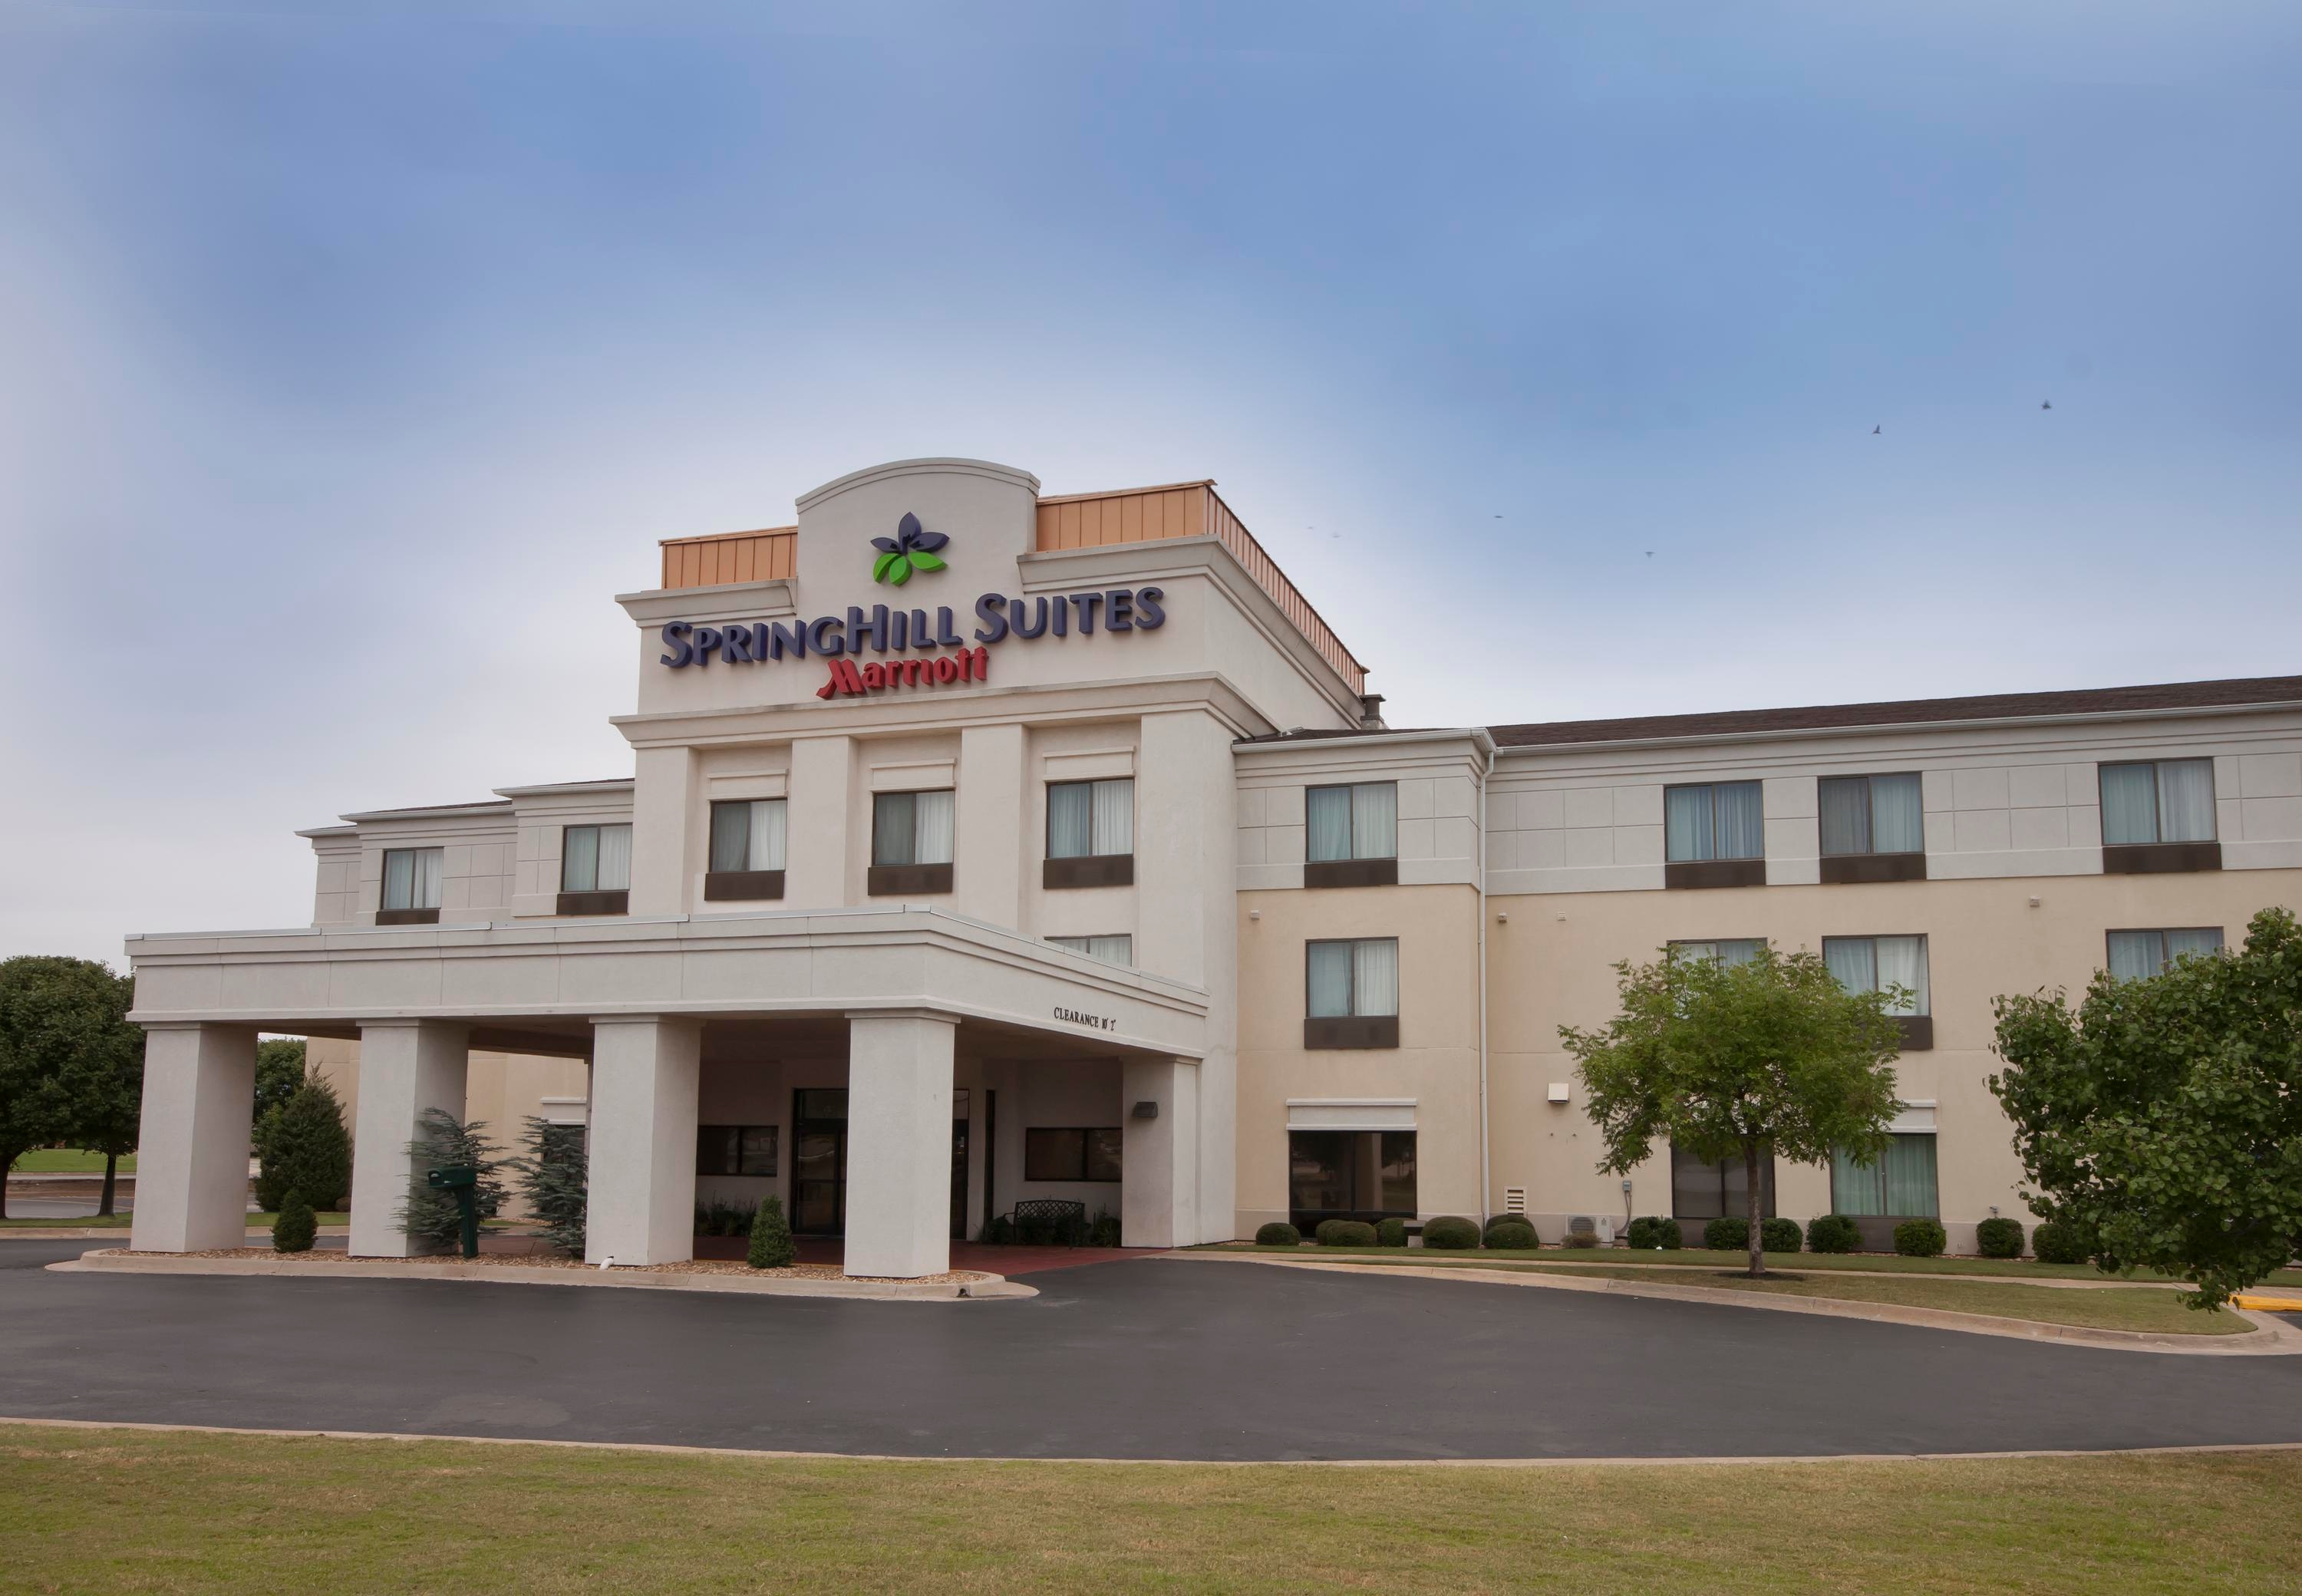 SpringHill Suites by Marriott Tulsa image 10